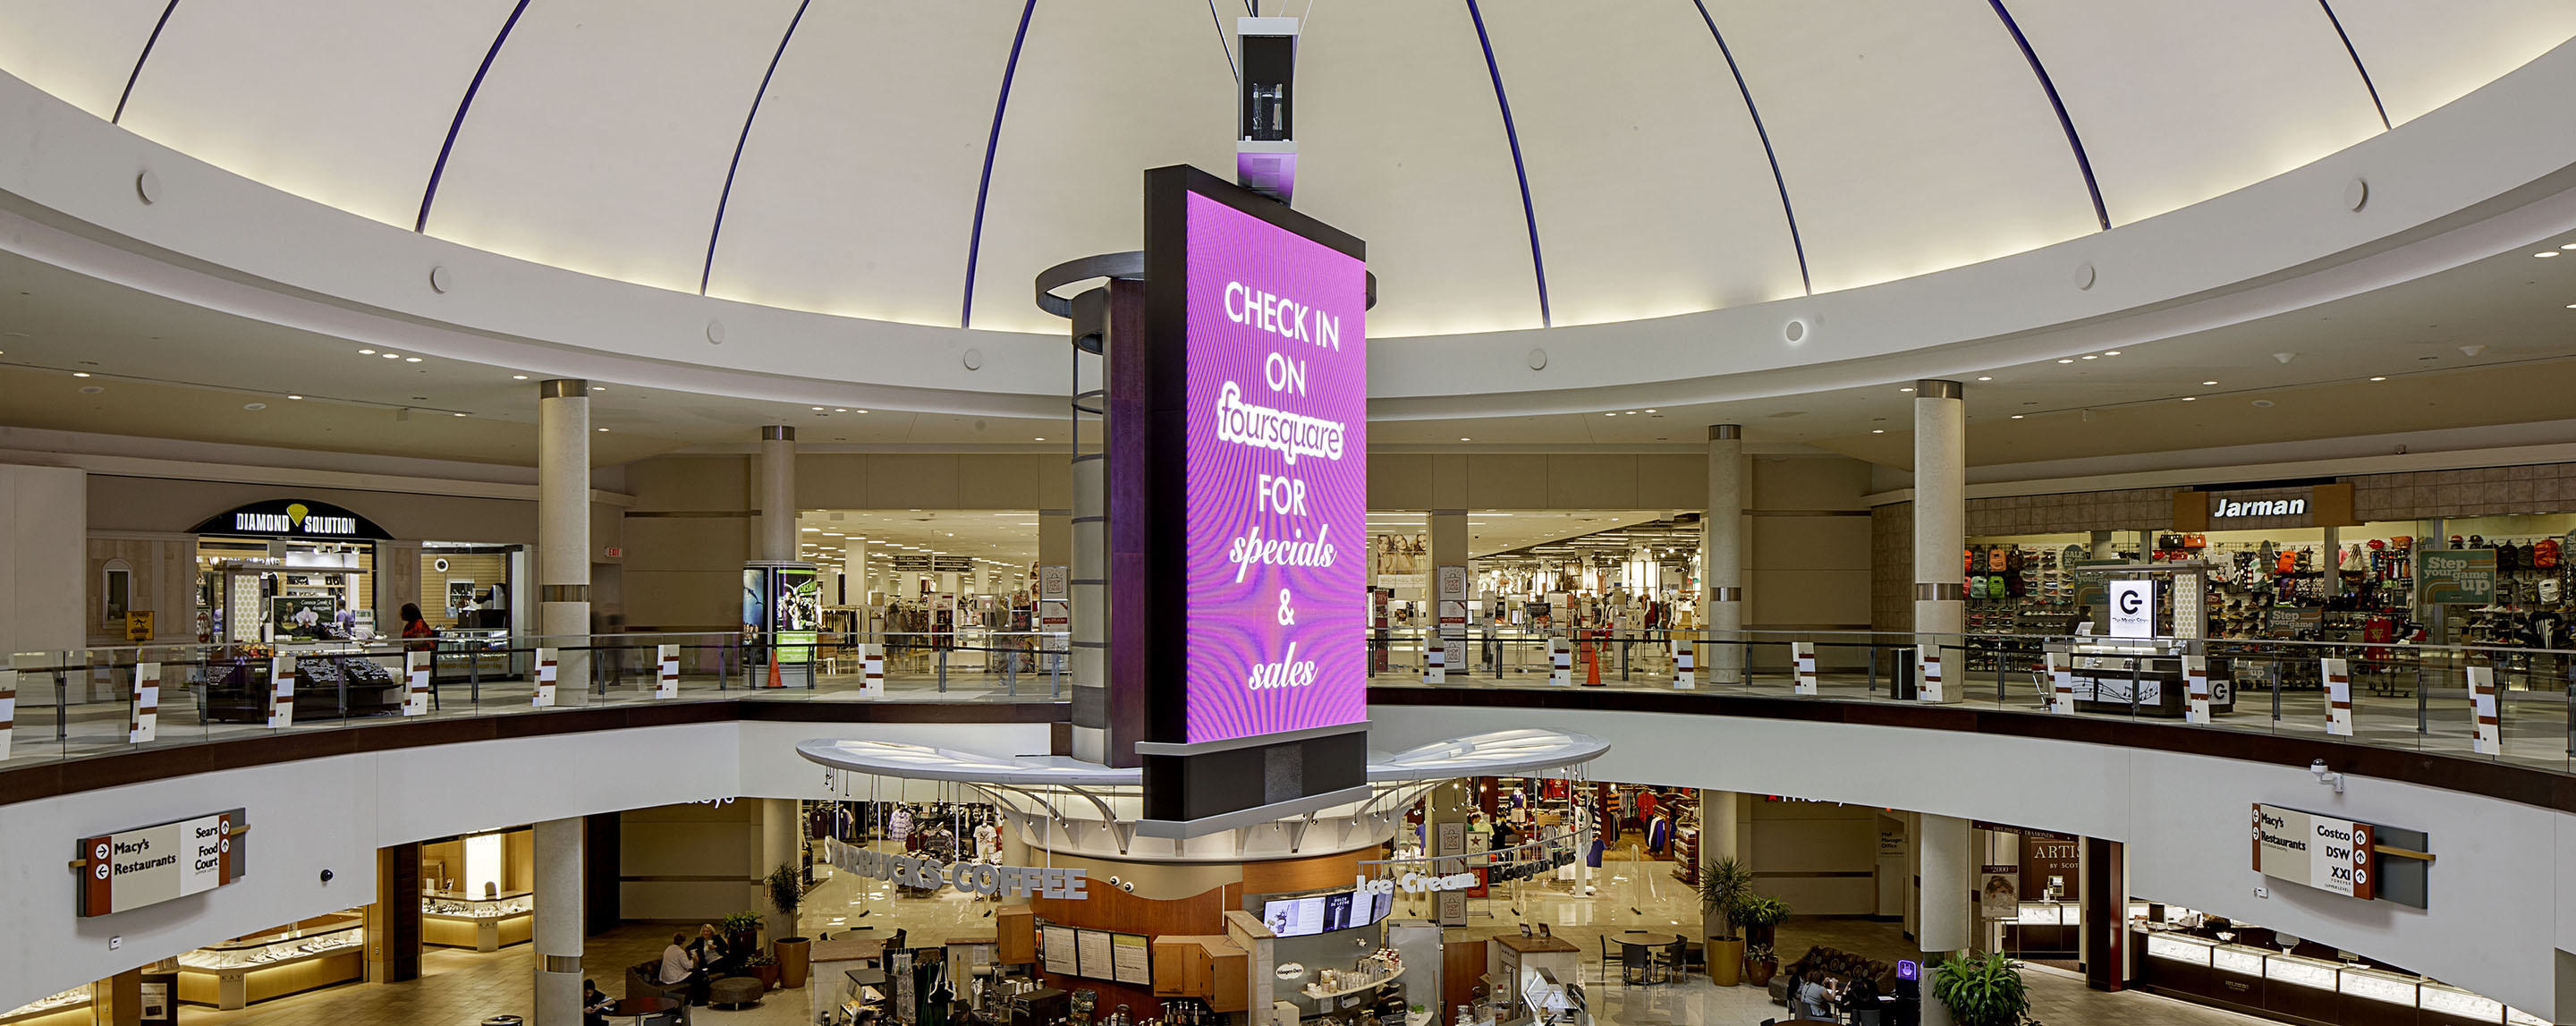 A purple banner hangs in the middle of a shopping center with stores such as Sears, Costco and Macy's.